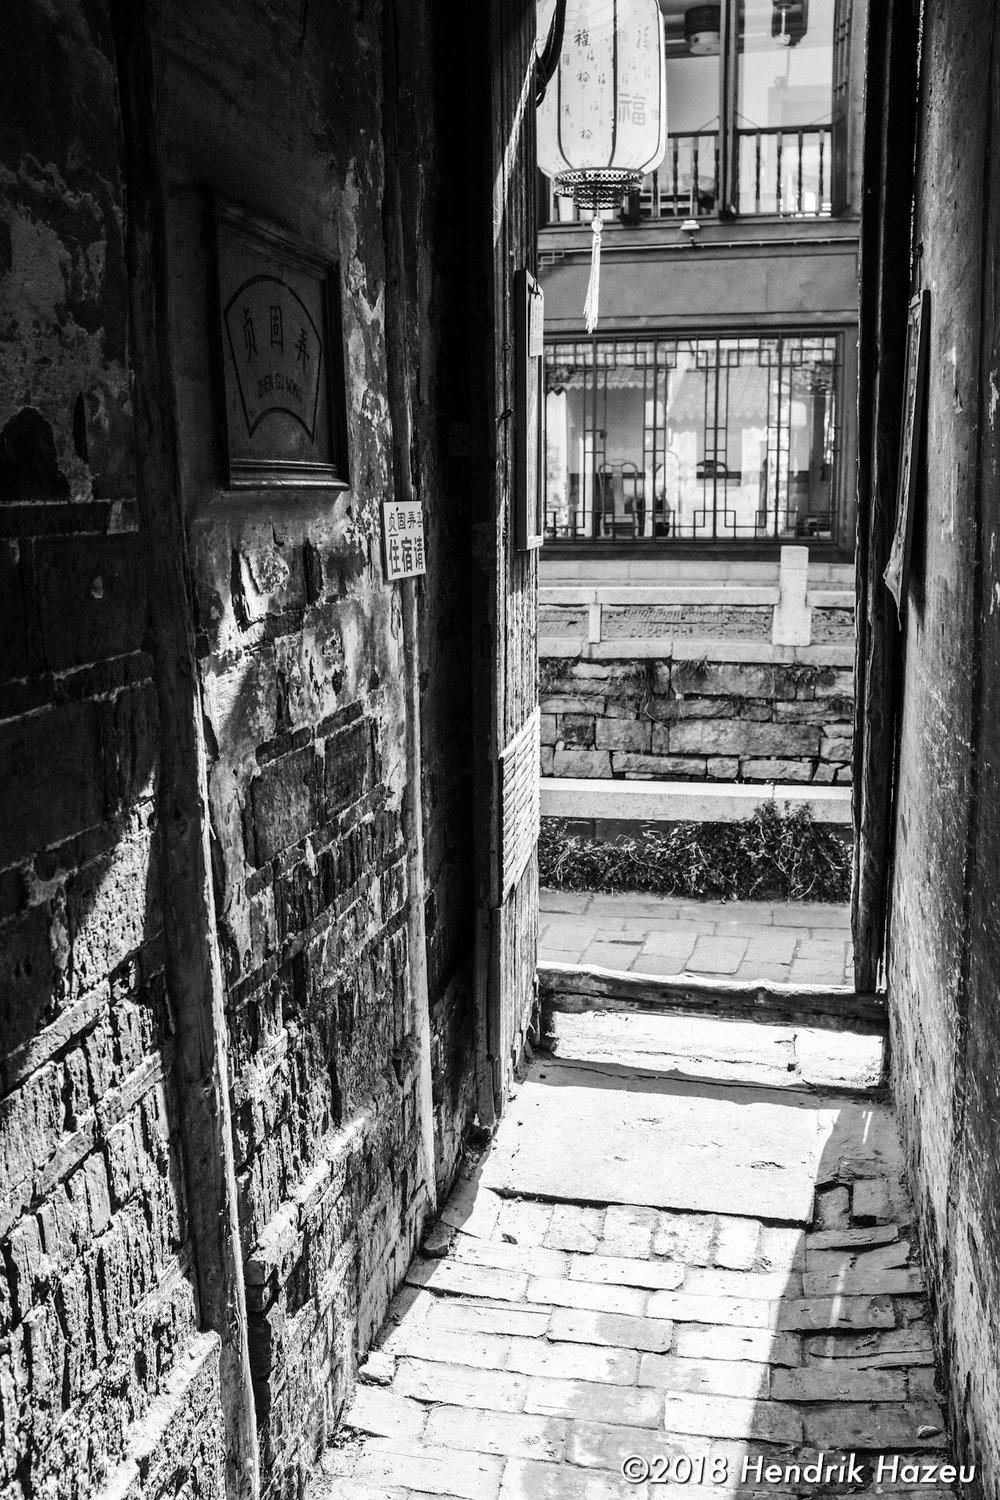 Chinese doorway, Fuji X100F, 23mm f/2 @f/5.6, 1/220sec ISO400 developed in LR CC mobile